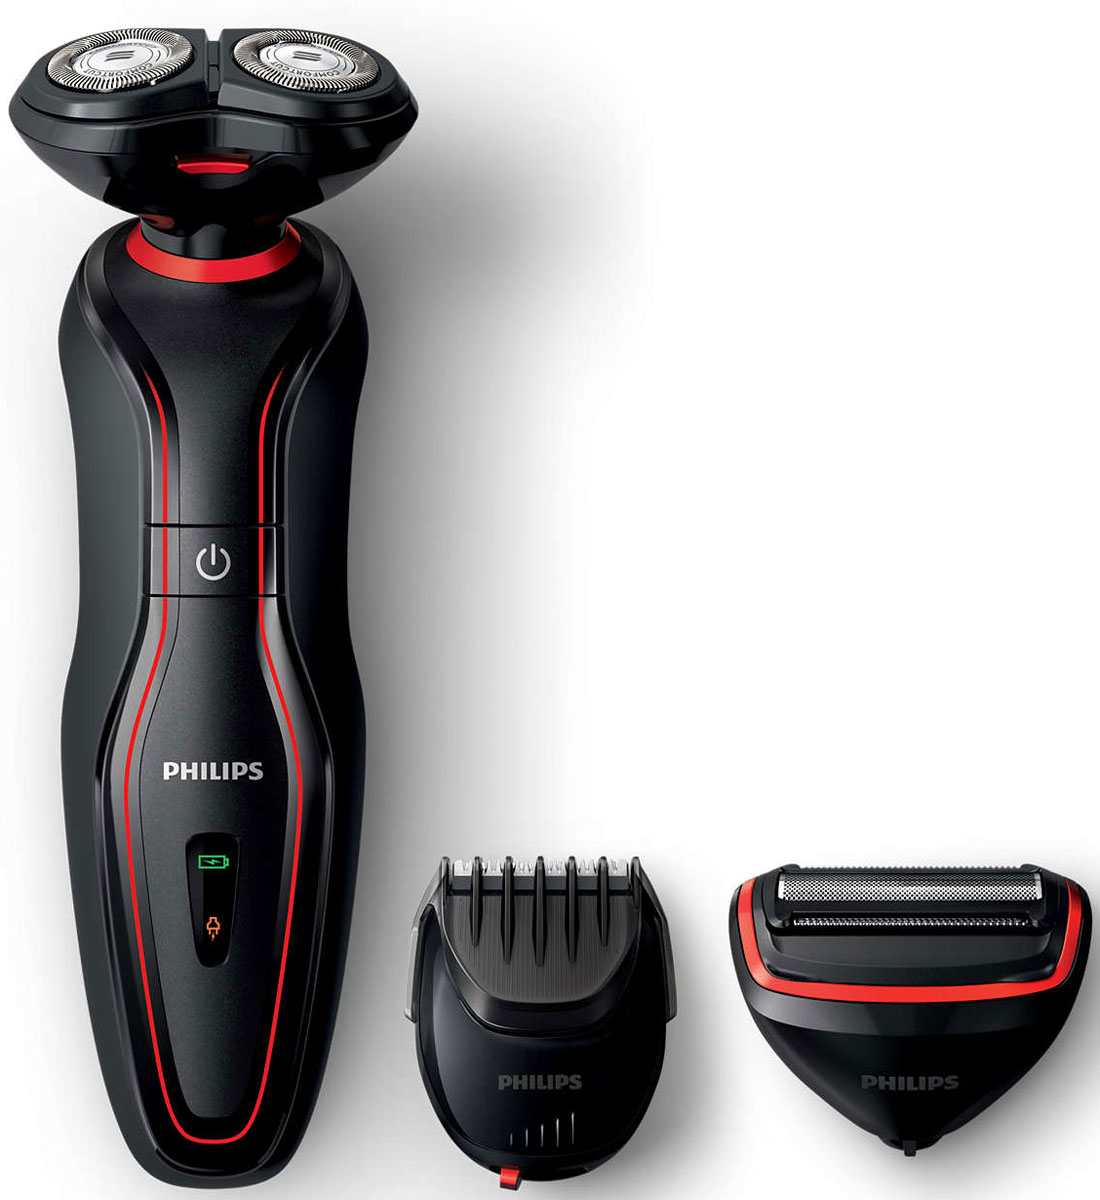 Philips Click&Style S738/17 электробритва, триммер и стайлер 3 в 1 в минске бритву philips qt4021